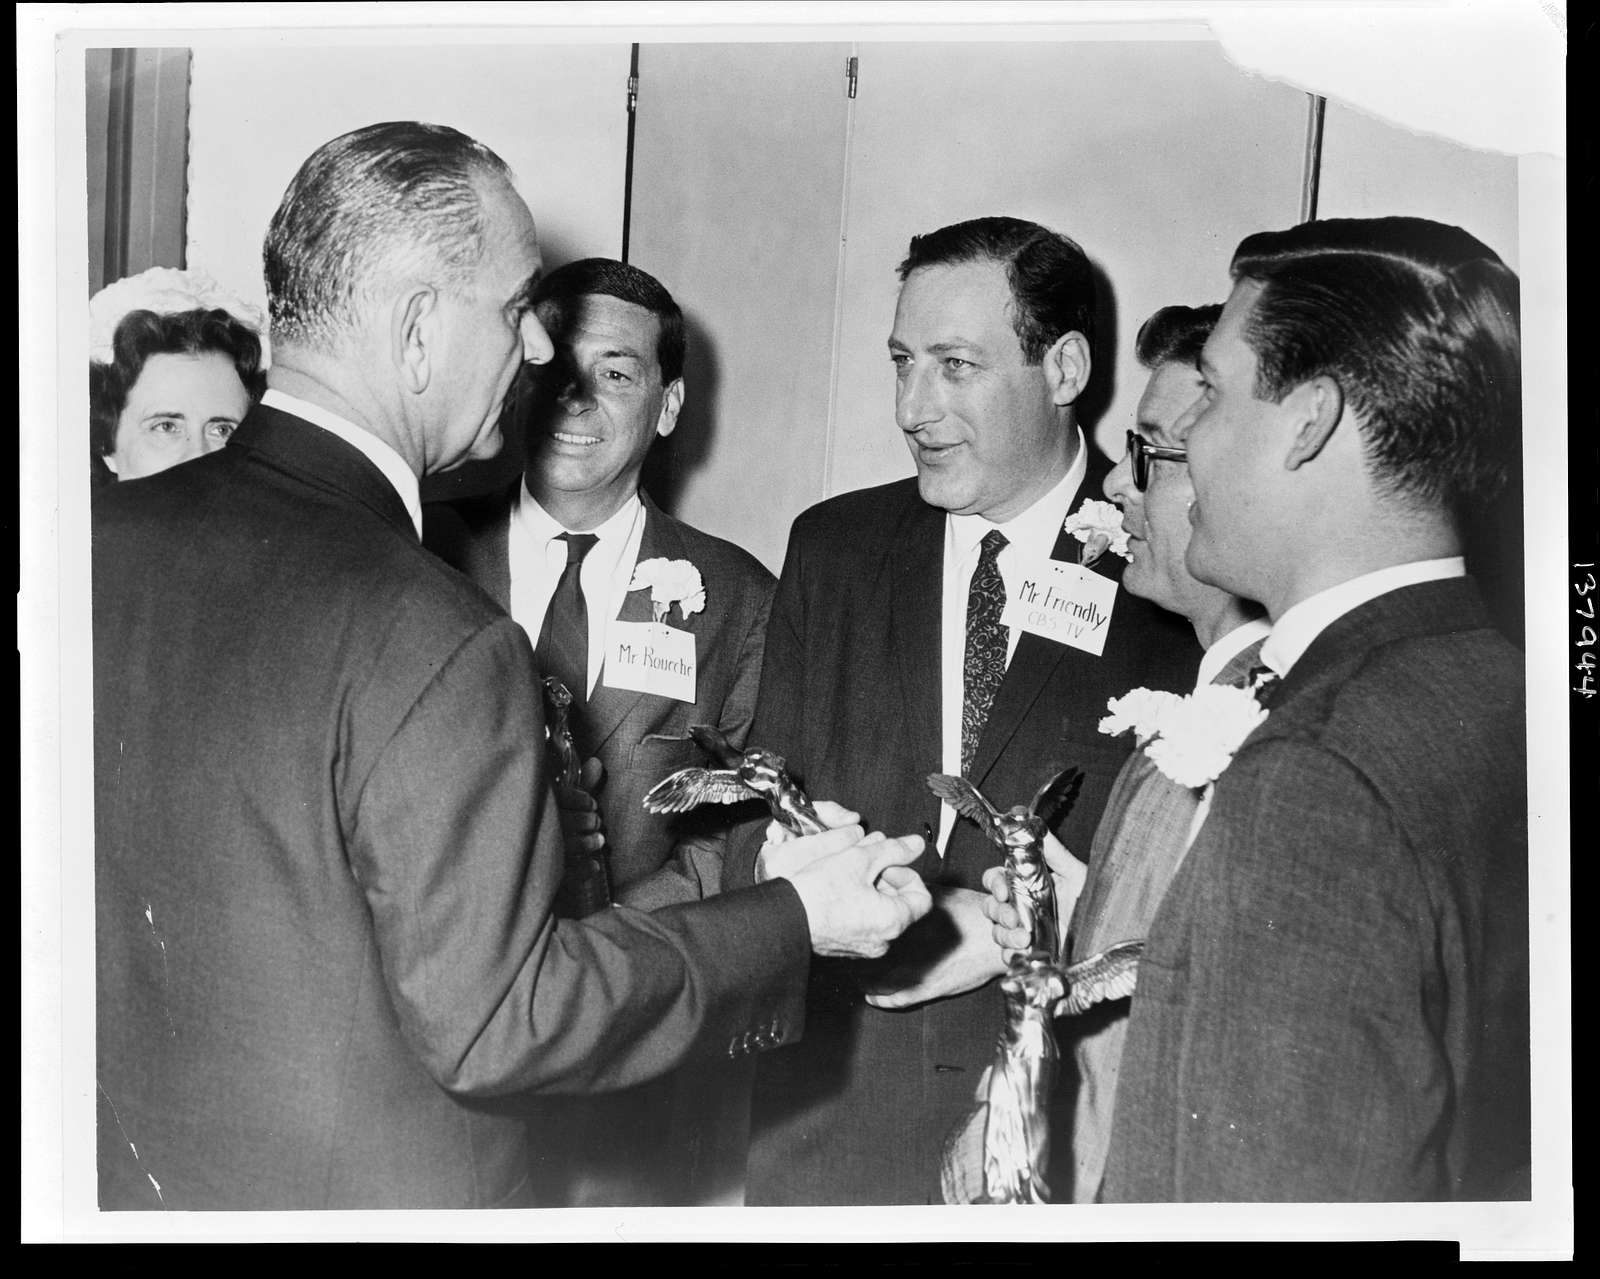 [Fred Friendly, talking with then Vice President Lyndon Johnson, as fellow Lasker awardees and Mary Lasker look on] / World Telegram & Sun photograph by Phil Stanziola.